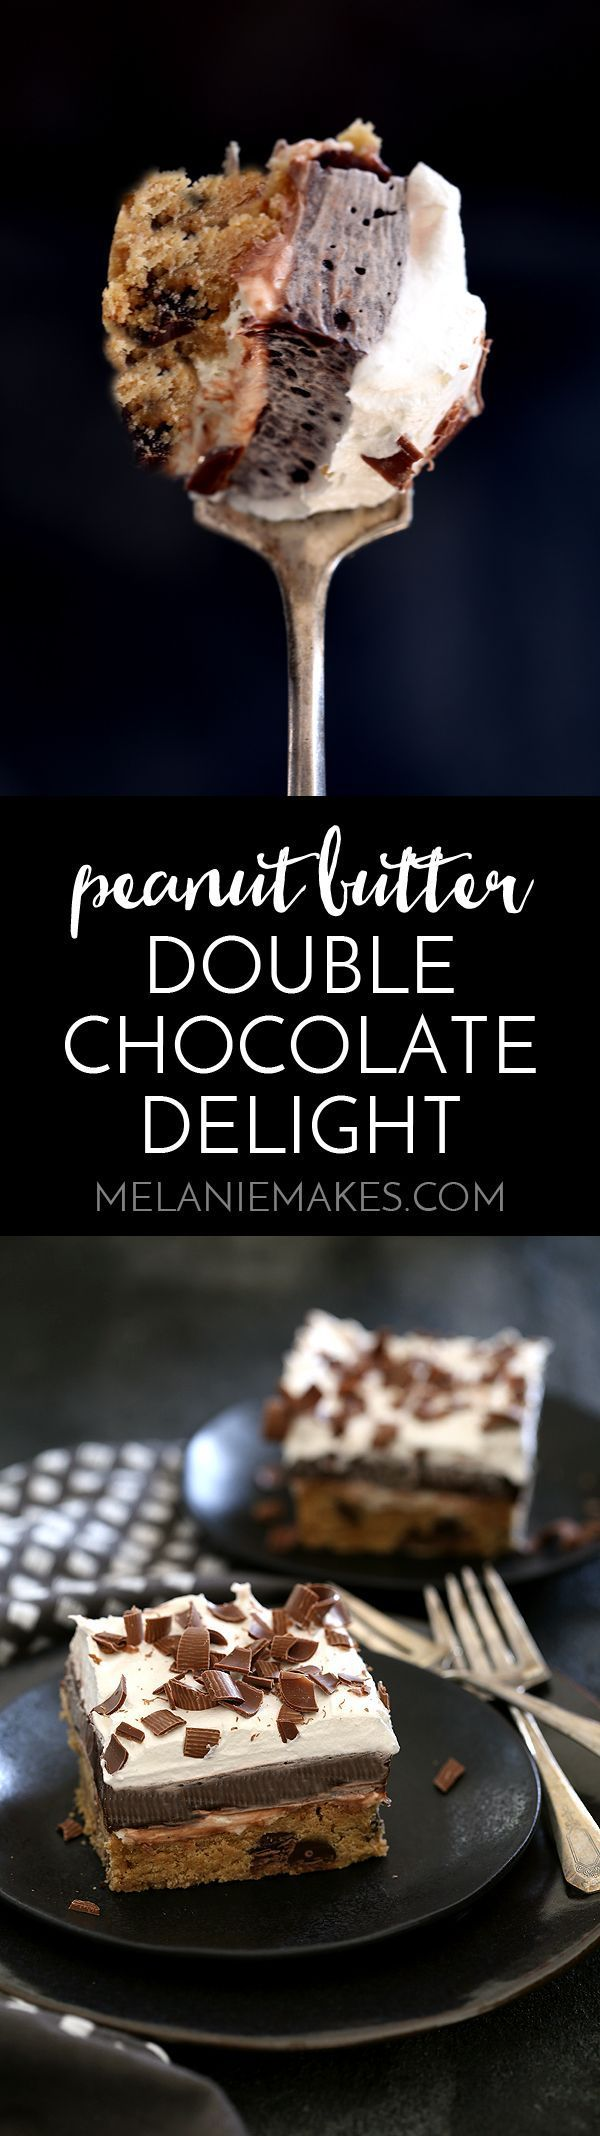 This Peanut Butter Double Chocolate Delight is a new spin on a family favorite that will have you coming back for seconds.  A three-in-one dessert.  Part peanut butter chocolate chip cookie, part cheesecake, part chocolate pie.